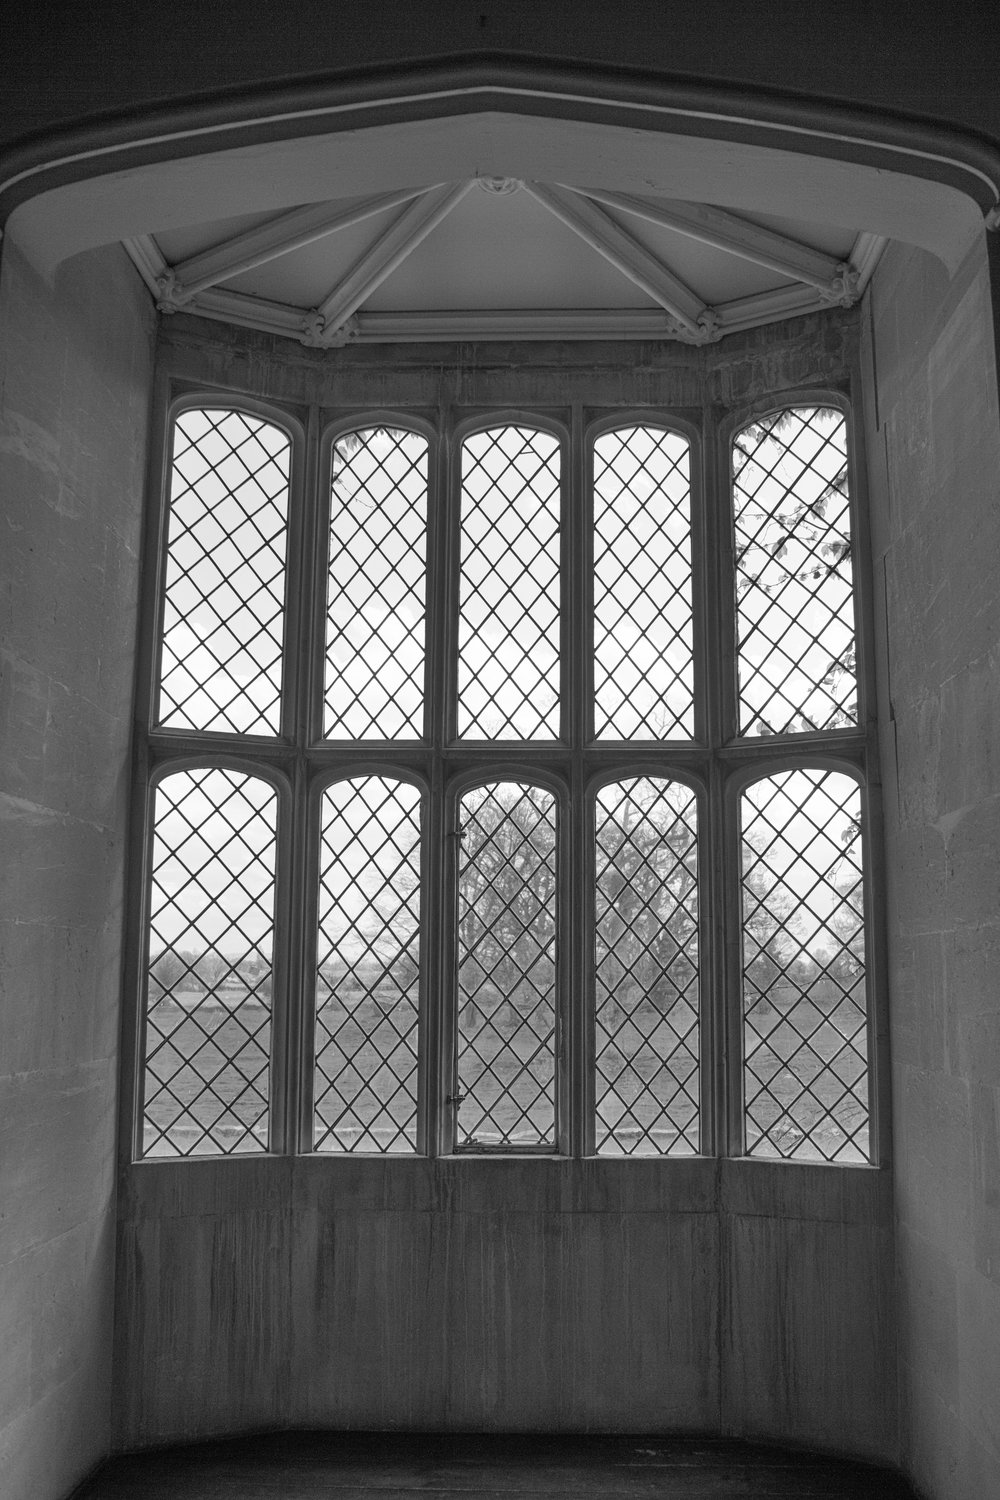 Don't forget to grab a shot of the famous latticed window when you visit Lacock Abbey (Image Mike Evans, Leica M10)